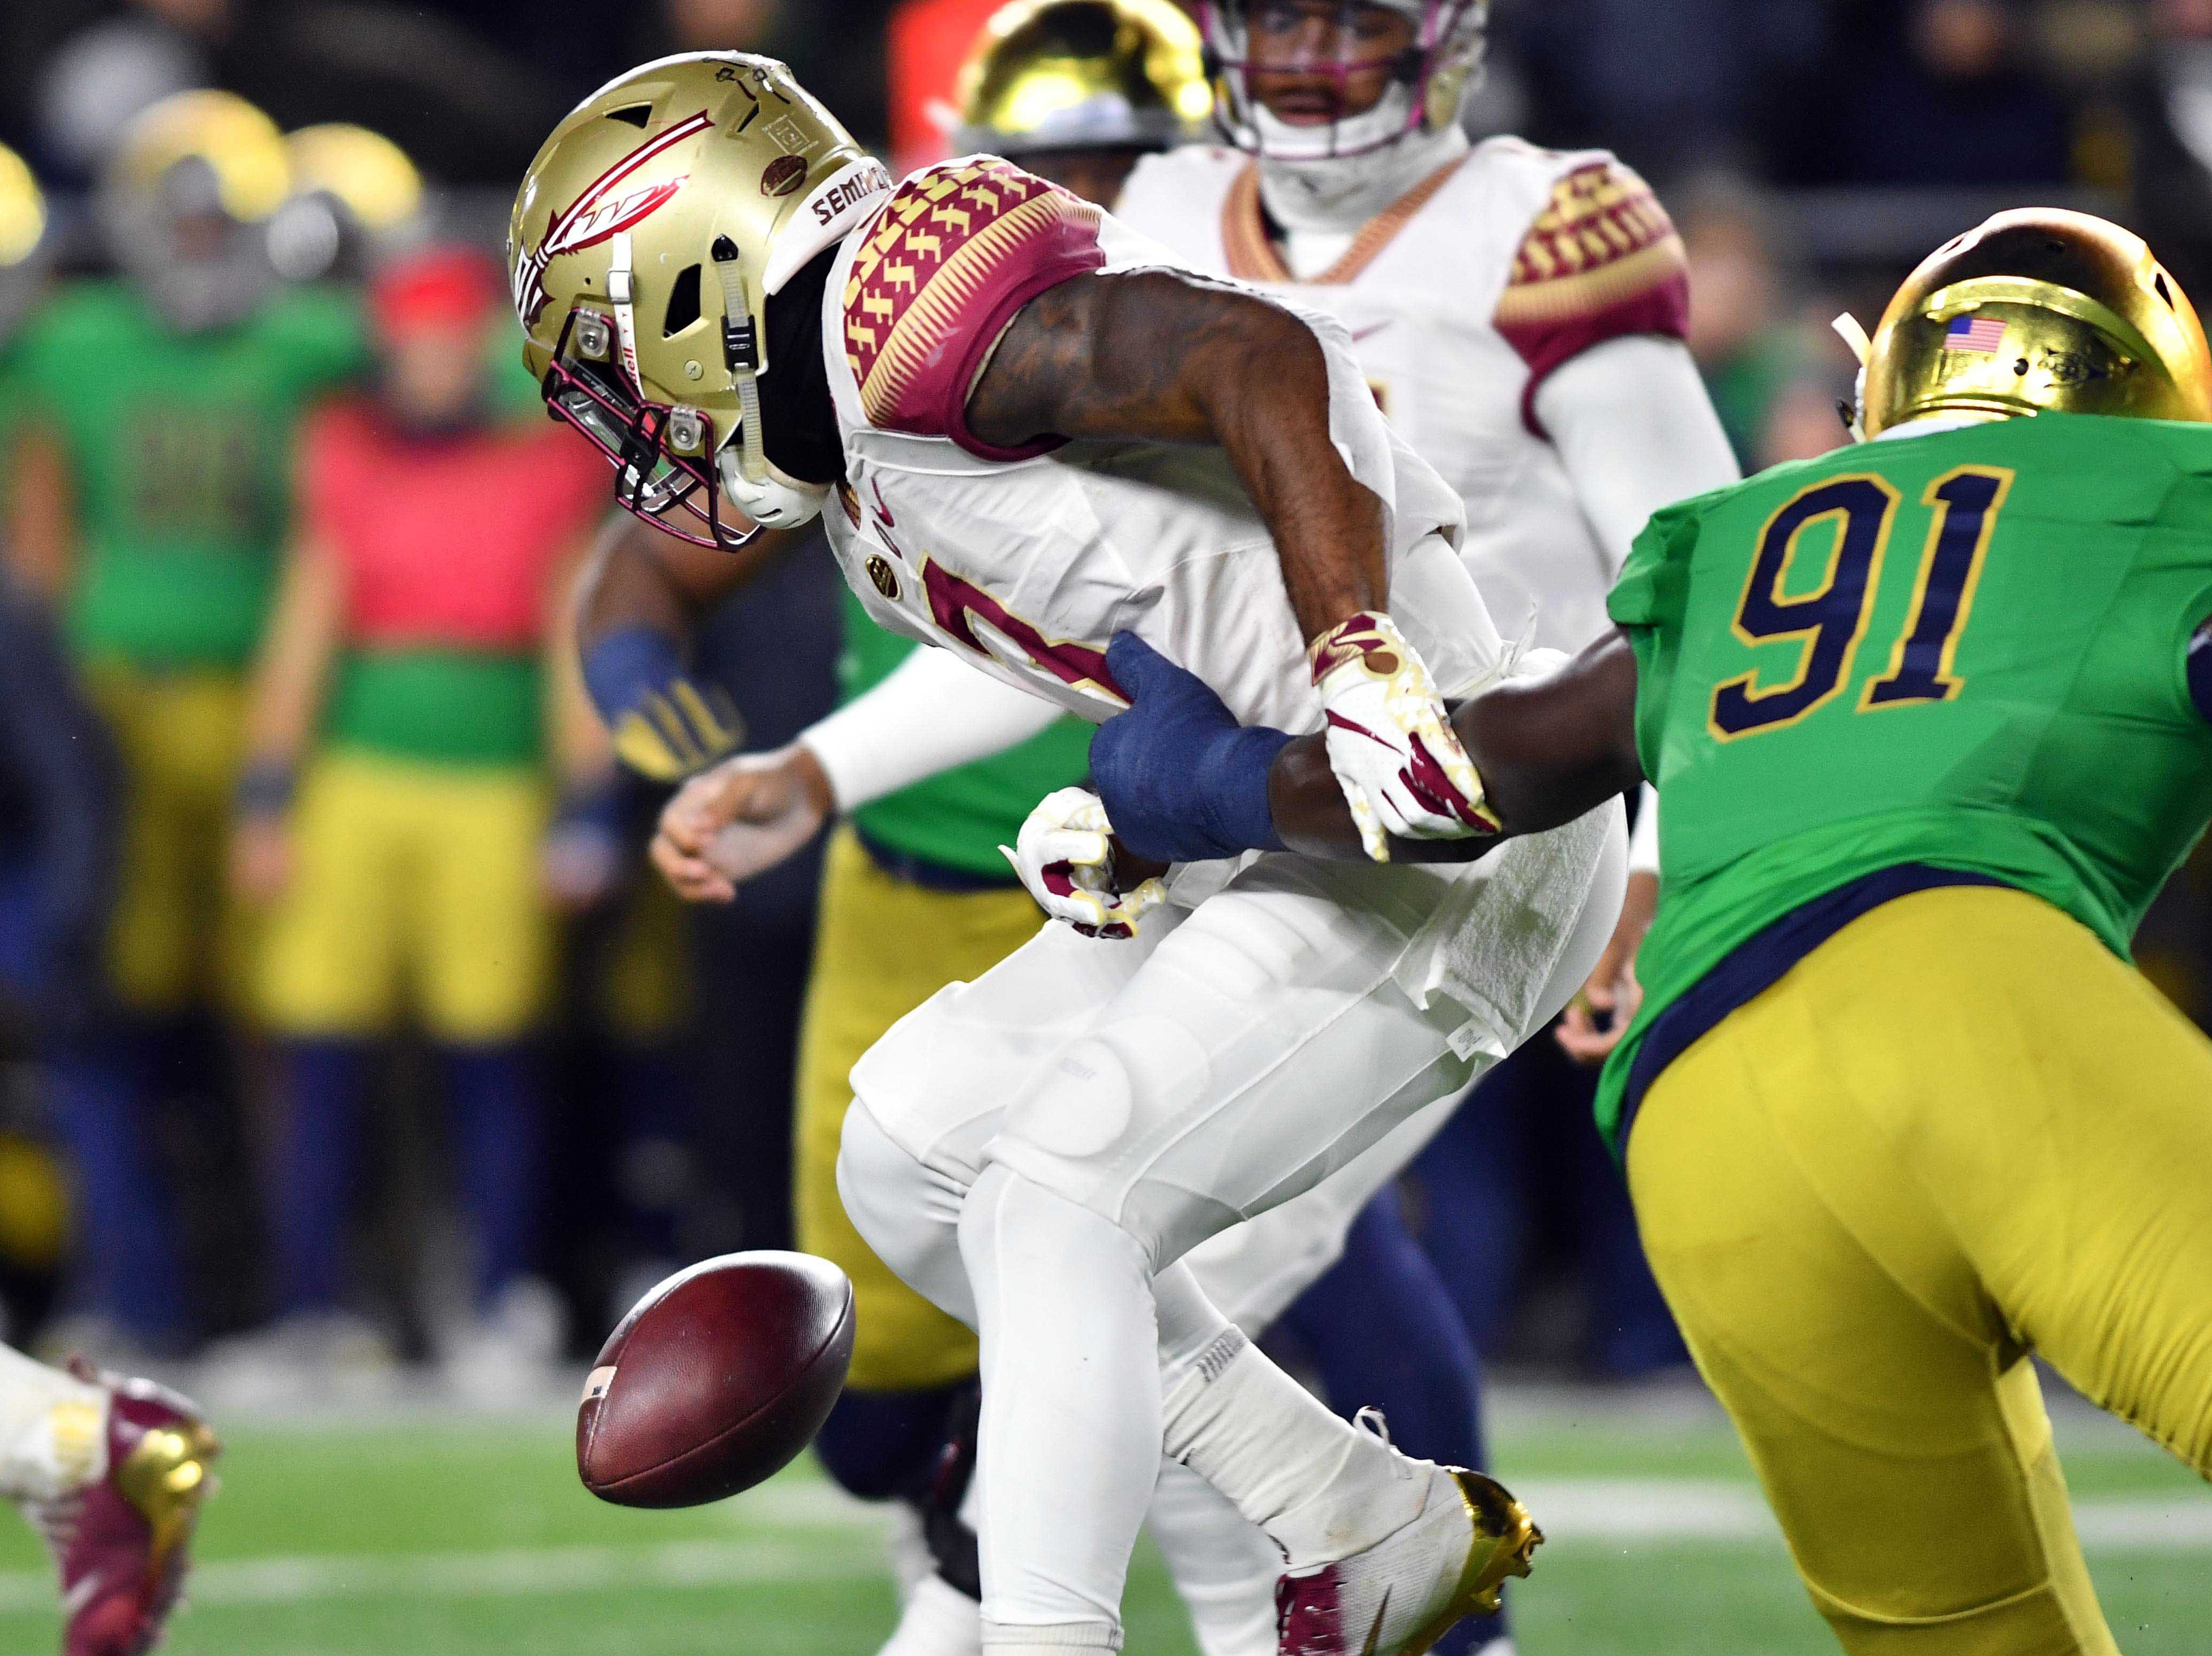 Nov 10, 2018; South Bend, IN, USA; Notre Dame Fighting Irish ddefensive lineman Adetokunbo Ogundeji (91) strips the ball from Florida State Seminoles running back Cam Akers (3) in the first quarter at Notre Dame Stadium. Mandatory Credit: Matt Cashore-USA TODAY Sports